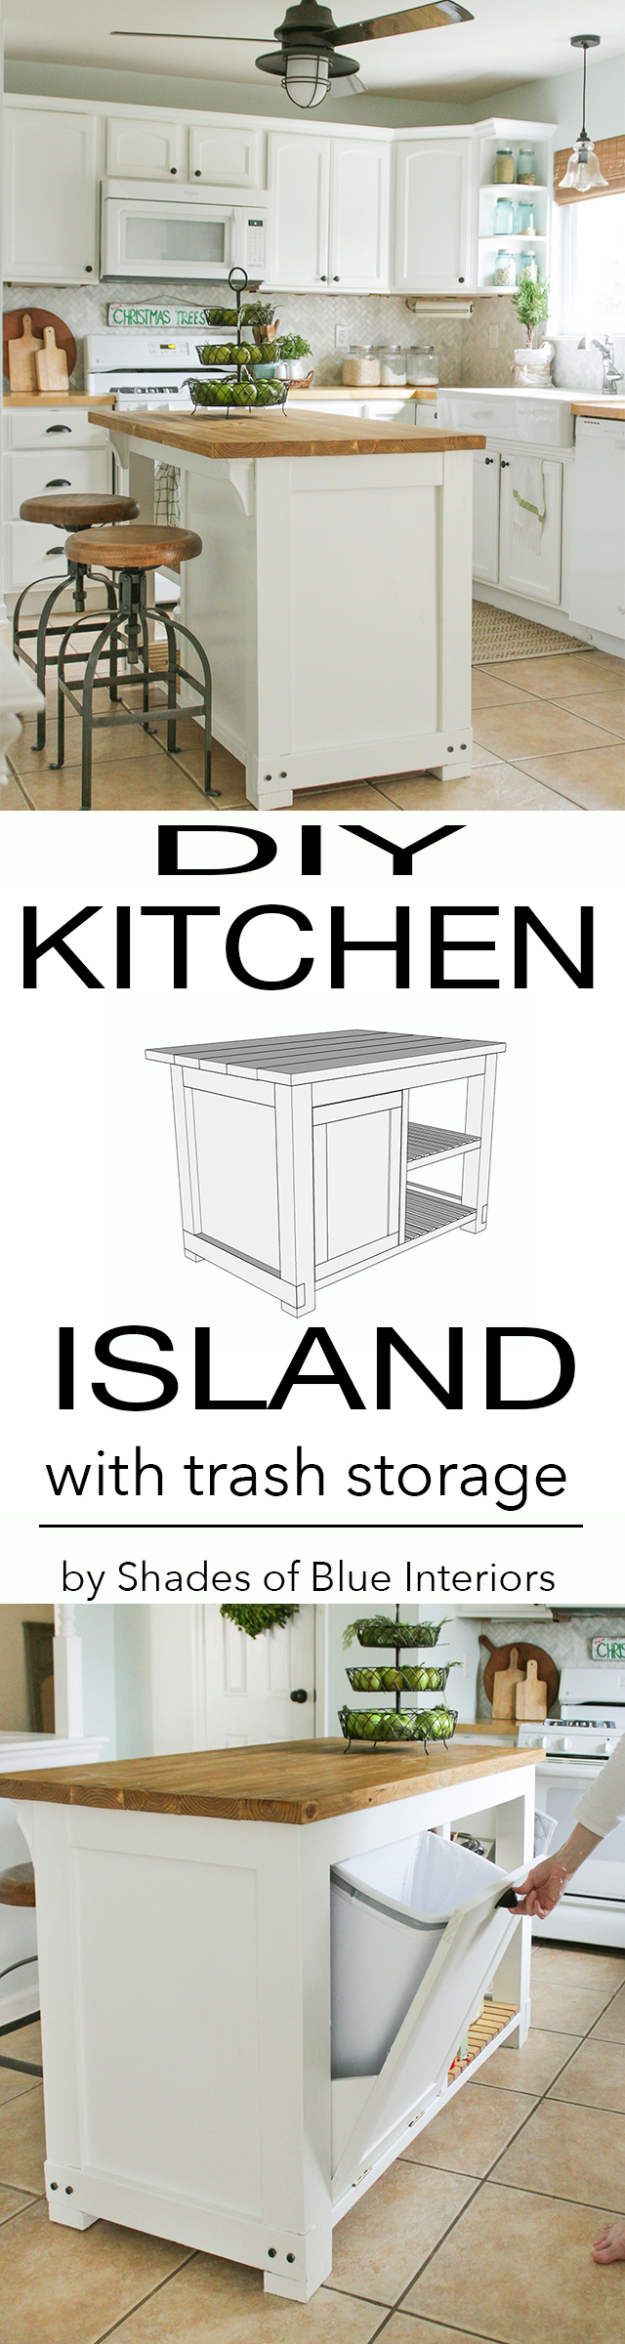 DIY Kitchen Makeover Ideas - DIY Kitchen Island With Trash Storage - Cheap Projects Projects You Can Make On A Budget - Cabinets, Counter Tops, Paint Tutorials, Islands and Faux Granite. Tutorials and Step by Step Instructions http://diyjoy.com/diy-kitchen-makeovers